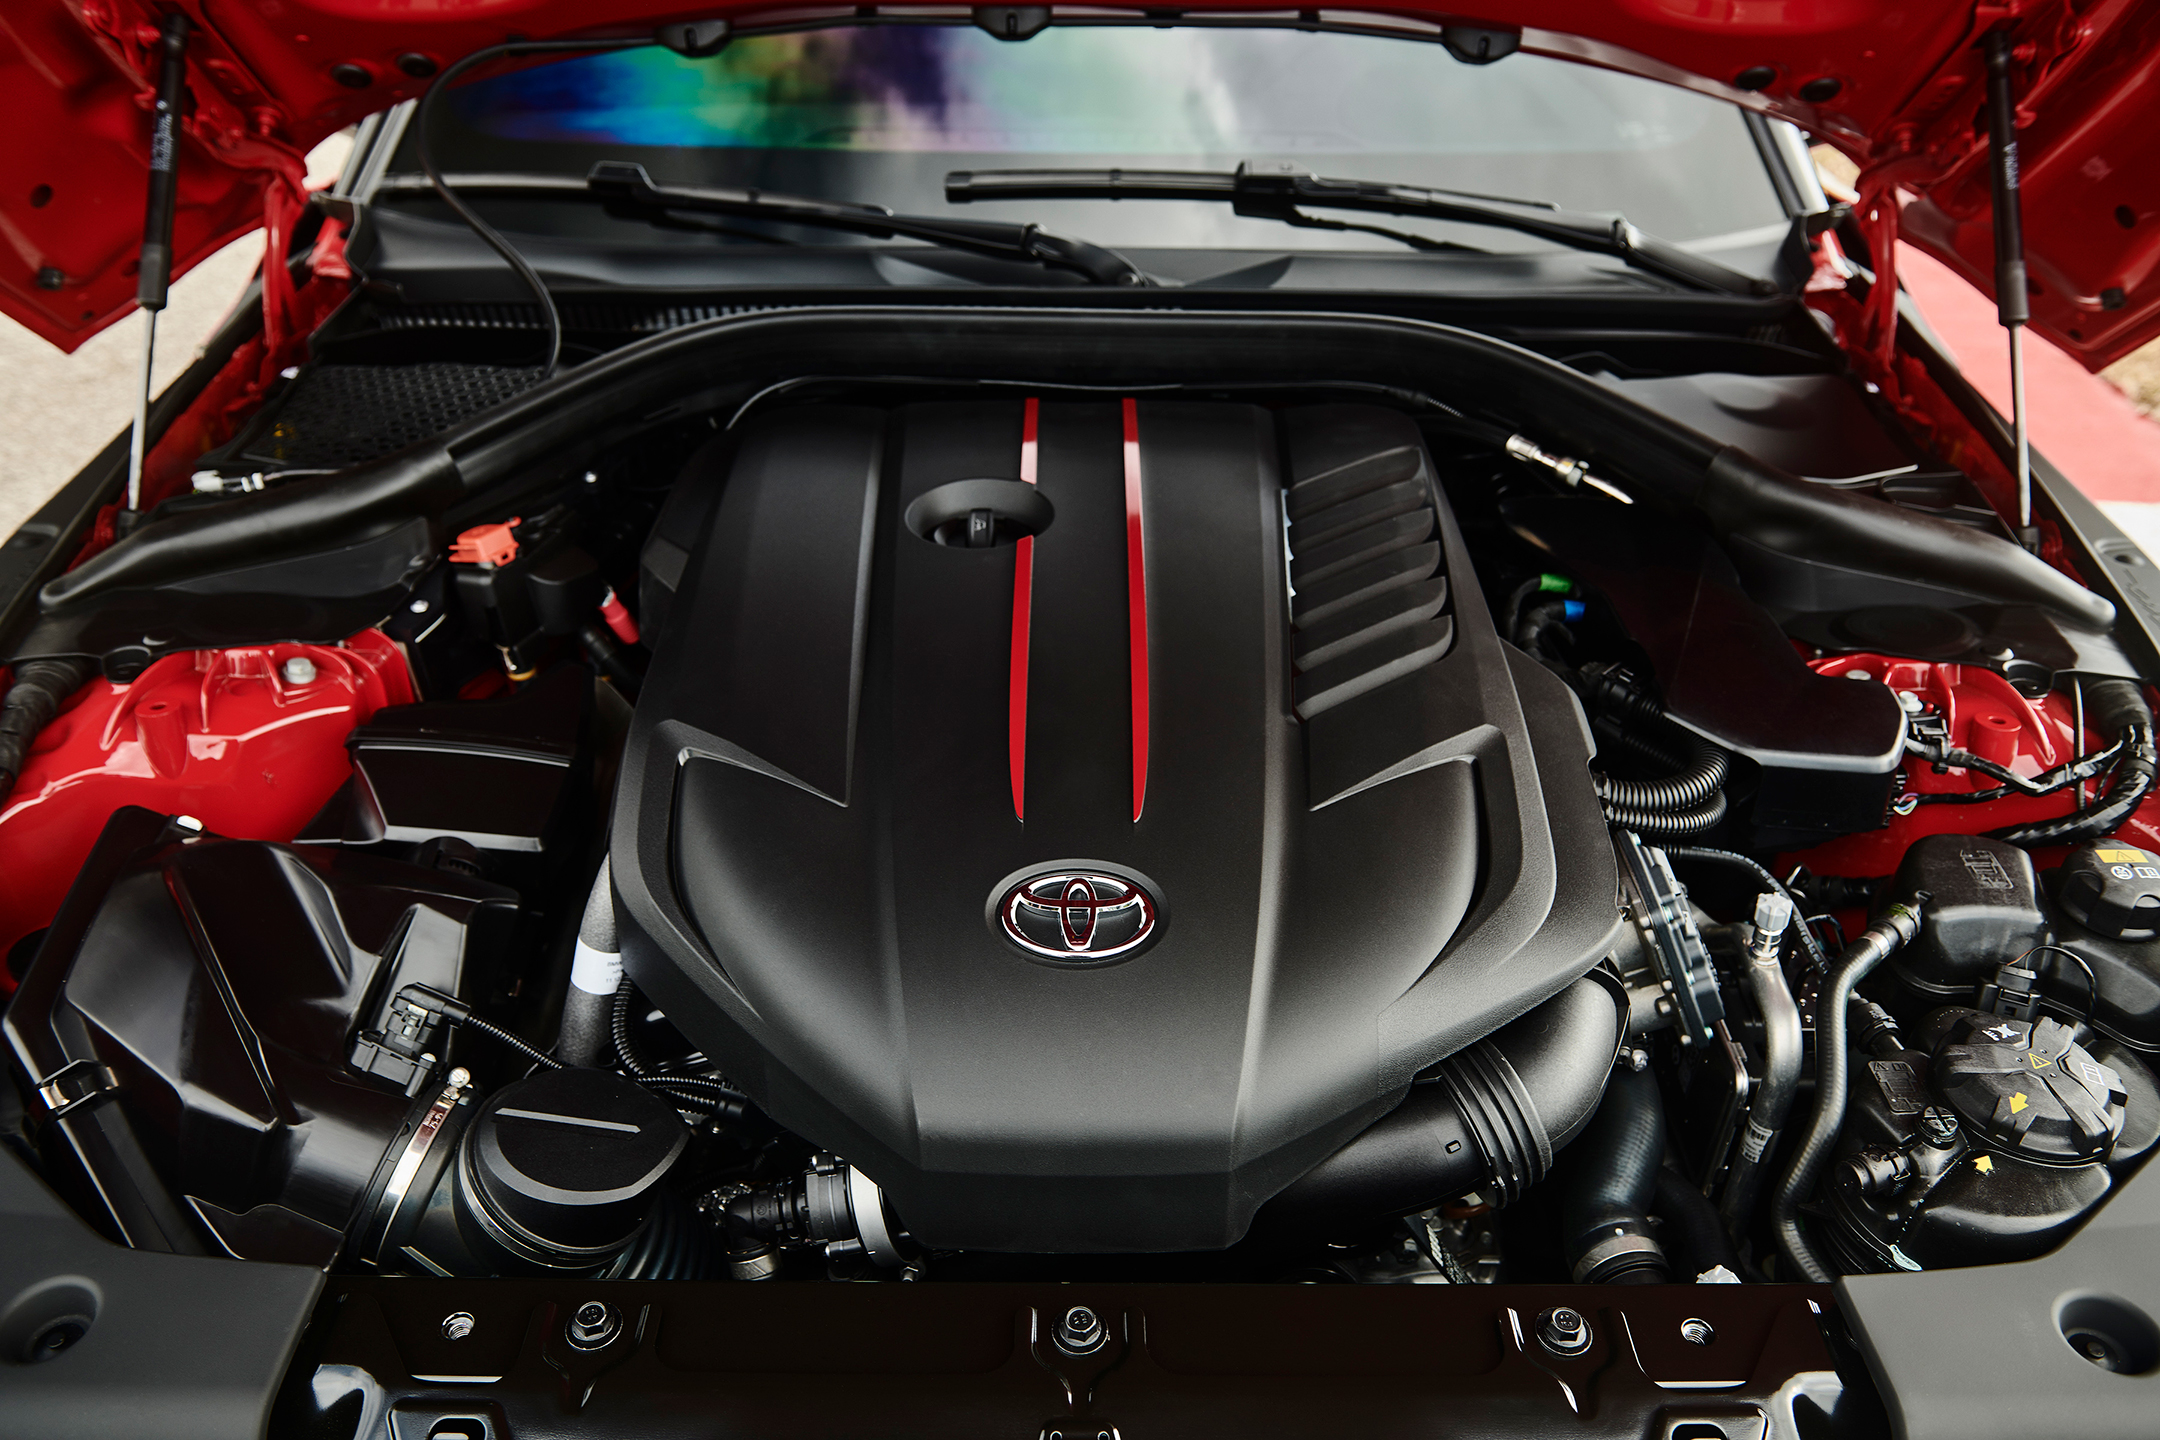 Toyota Supra - 2019 - under the hood - engine /moteur